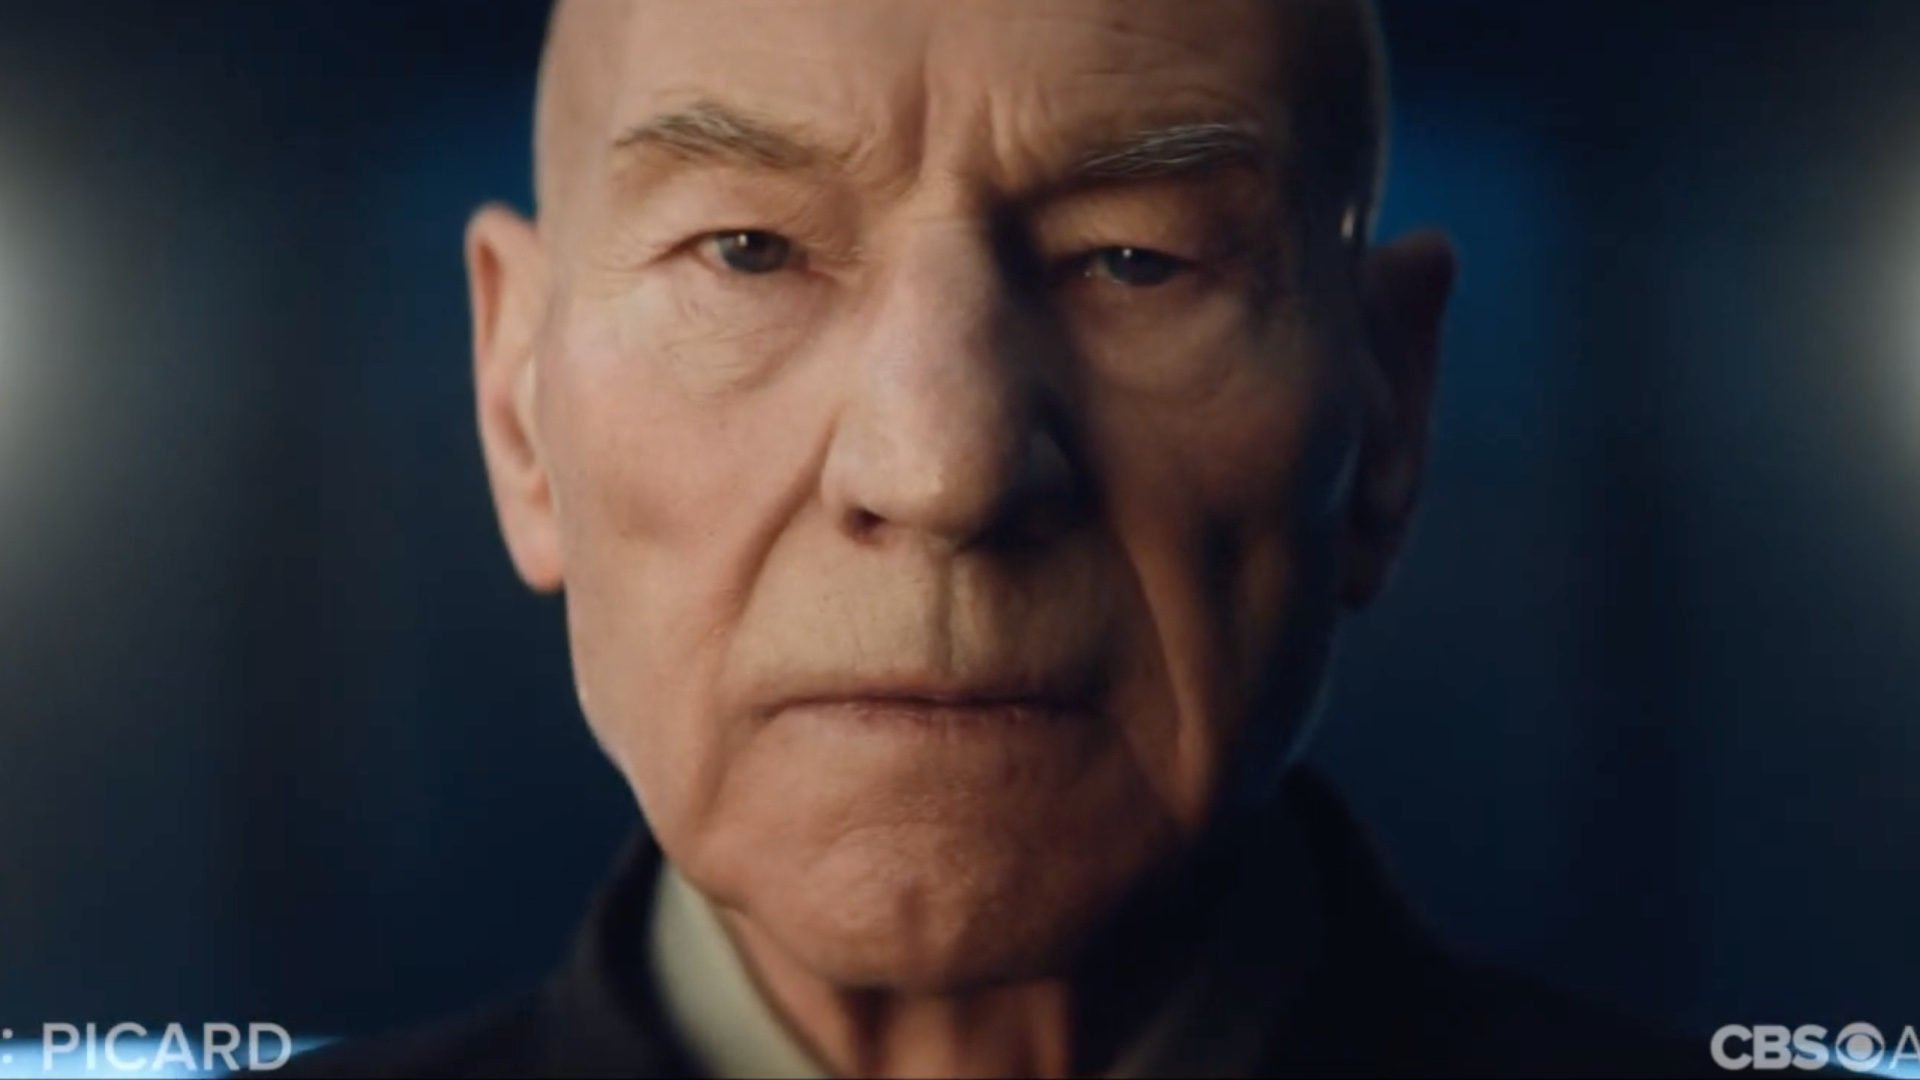 wonderful-first-teaser-trailer-for-star-trek-picard-social.jpg